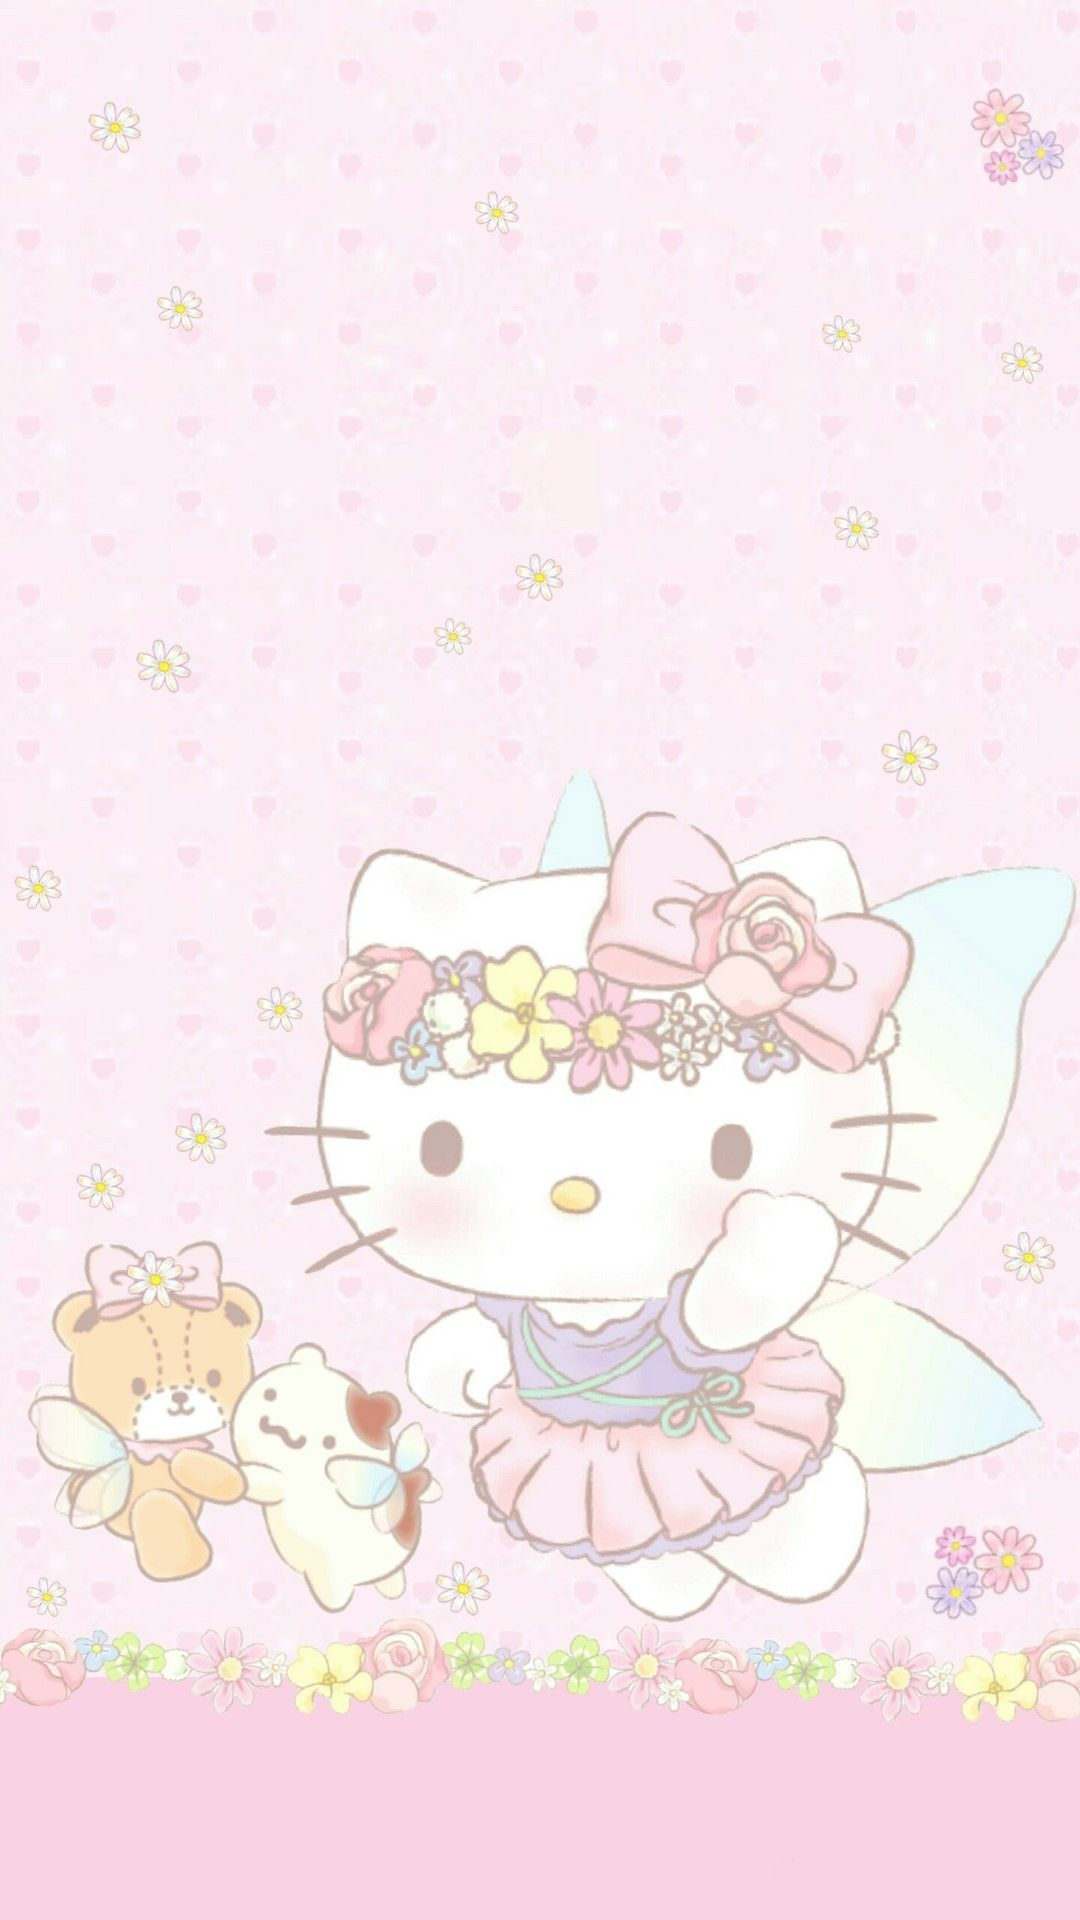 Fairy Kitty Wallpapers   4k HD Fairy Kitty Backgrounds on 1080x1920